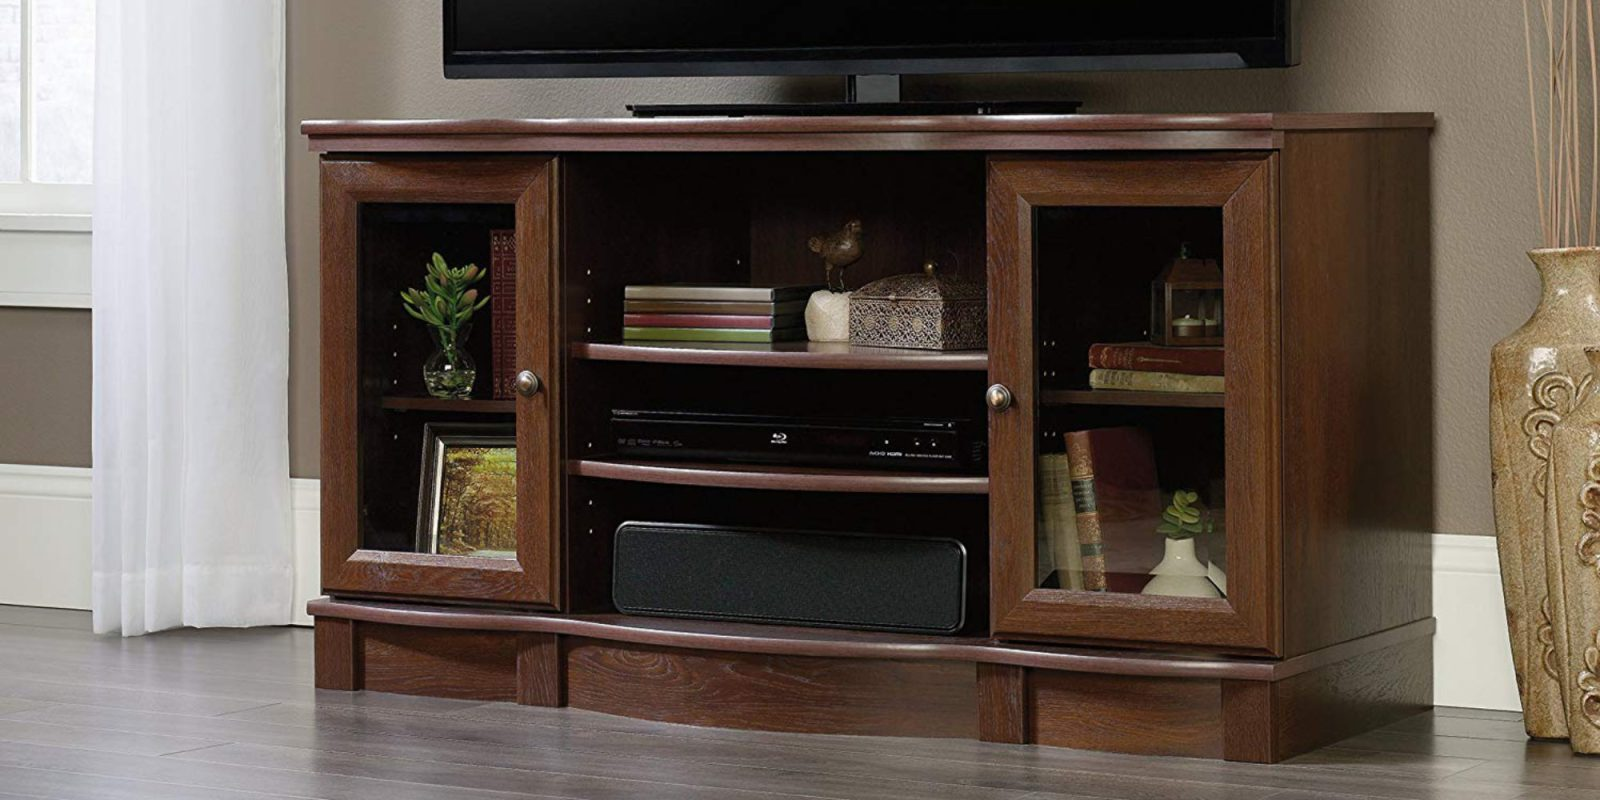 Declutter the living room with Sauder's Regent Place TV Stand: $129 (Save 20%)